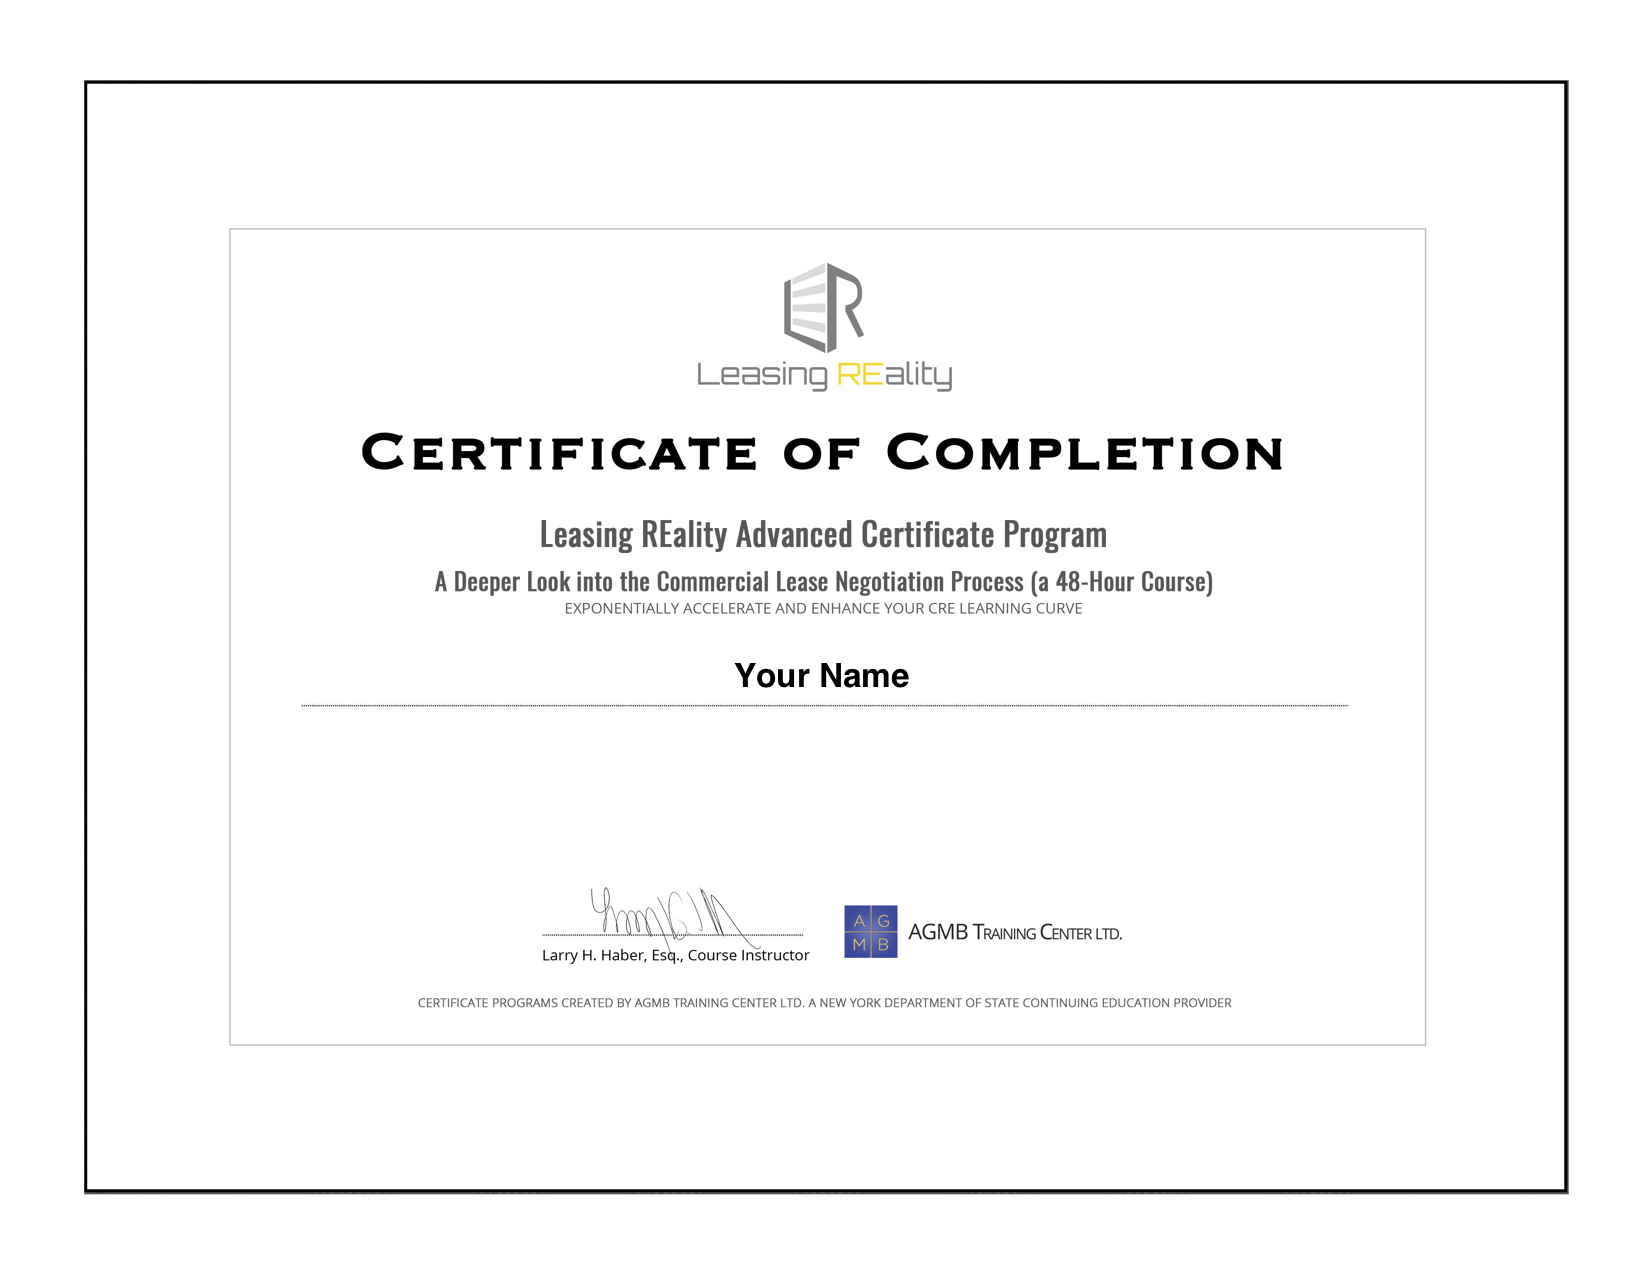 Leasing_REality_Advanced_Certificate